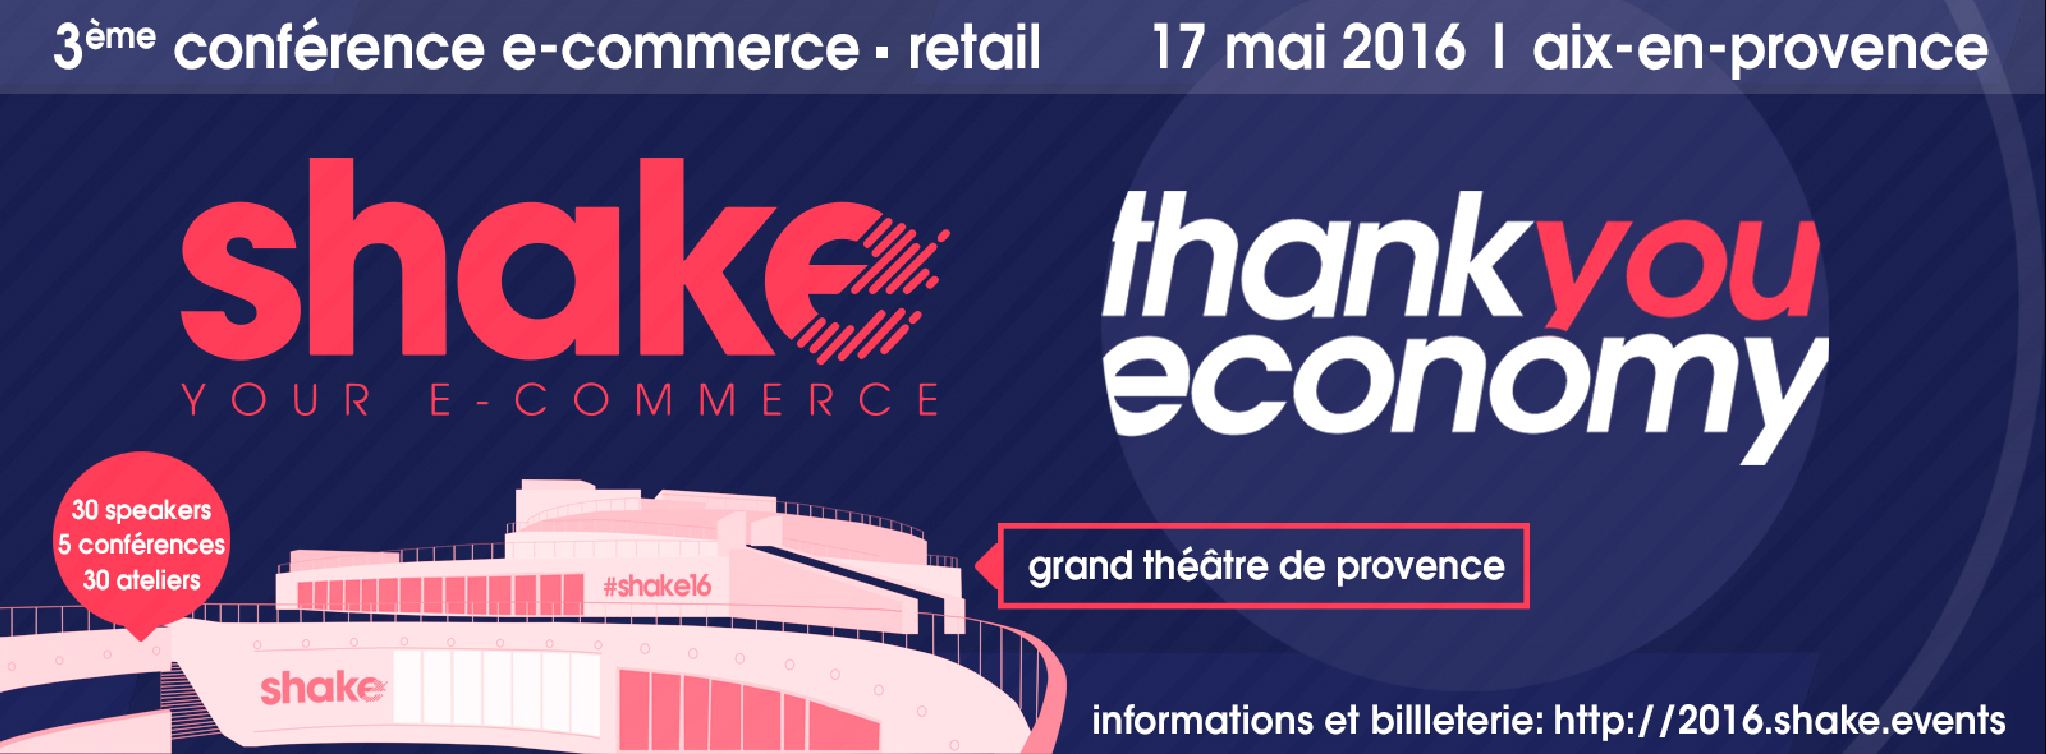 Shake 2016 will bring e-commerce in Provence to life